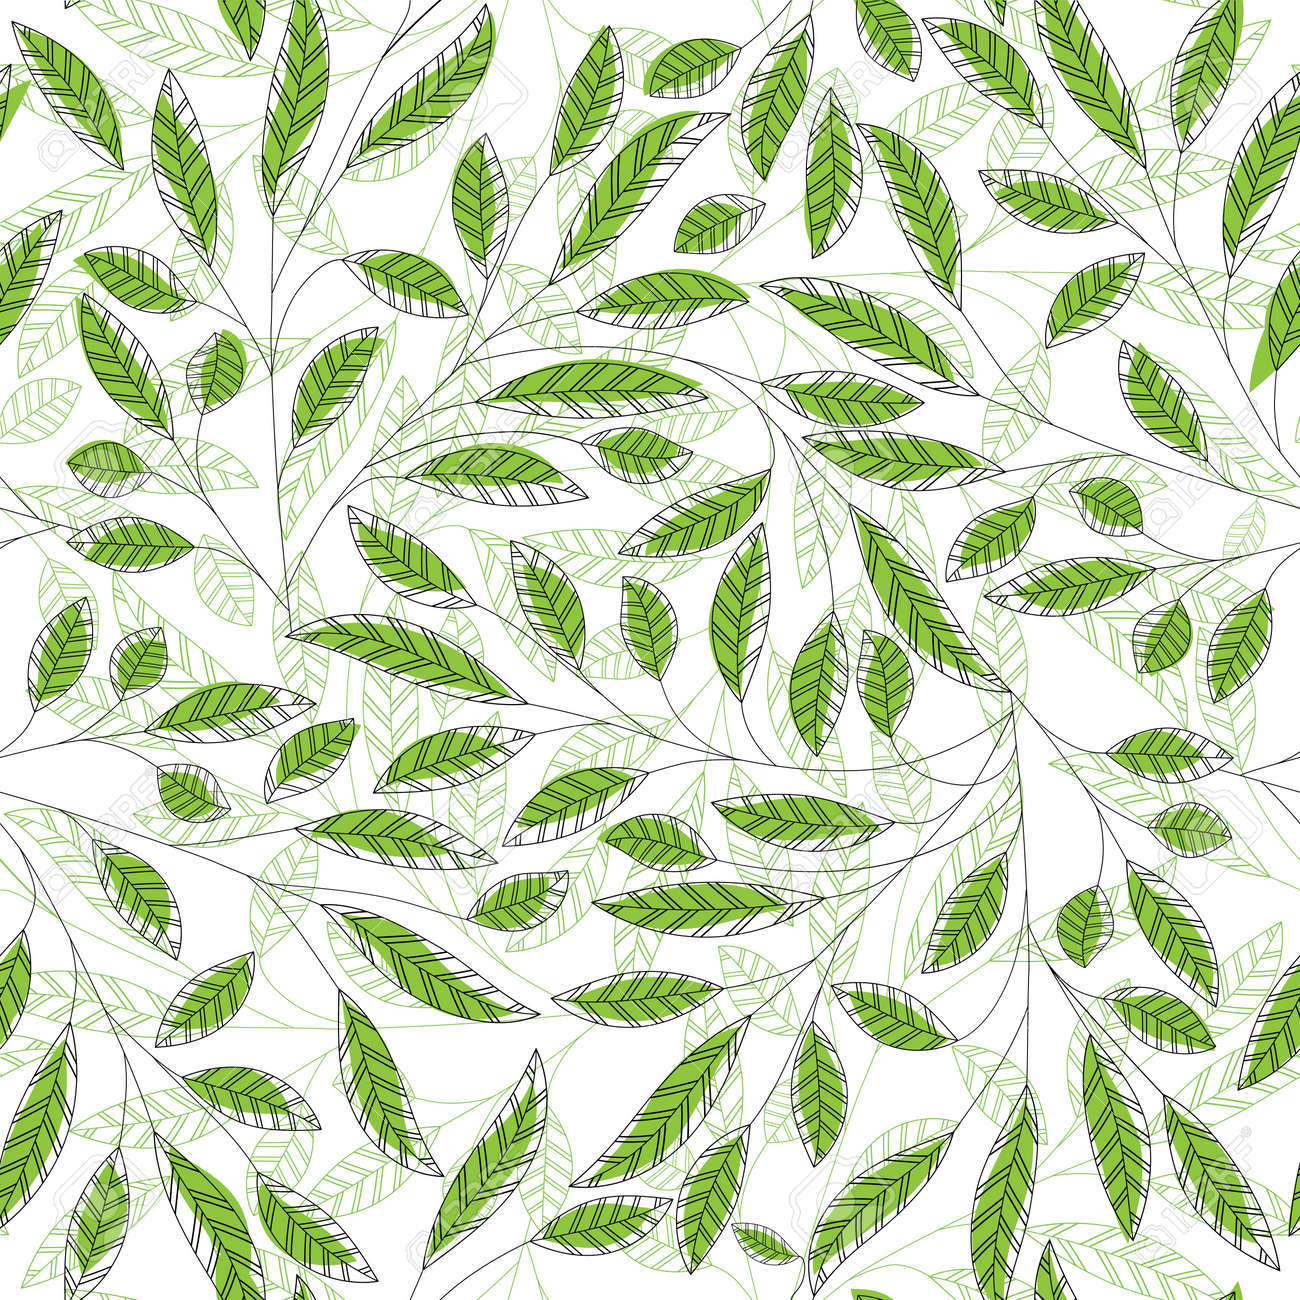 Leaf Floral Abstract Seamless Vector Background Art Pattern Fabric Texture Vintage Design Pretty